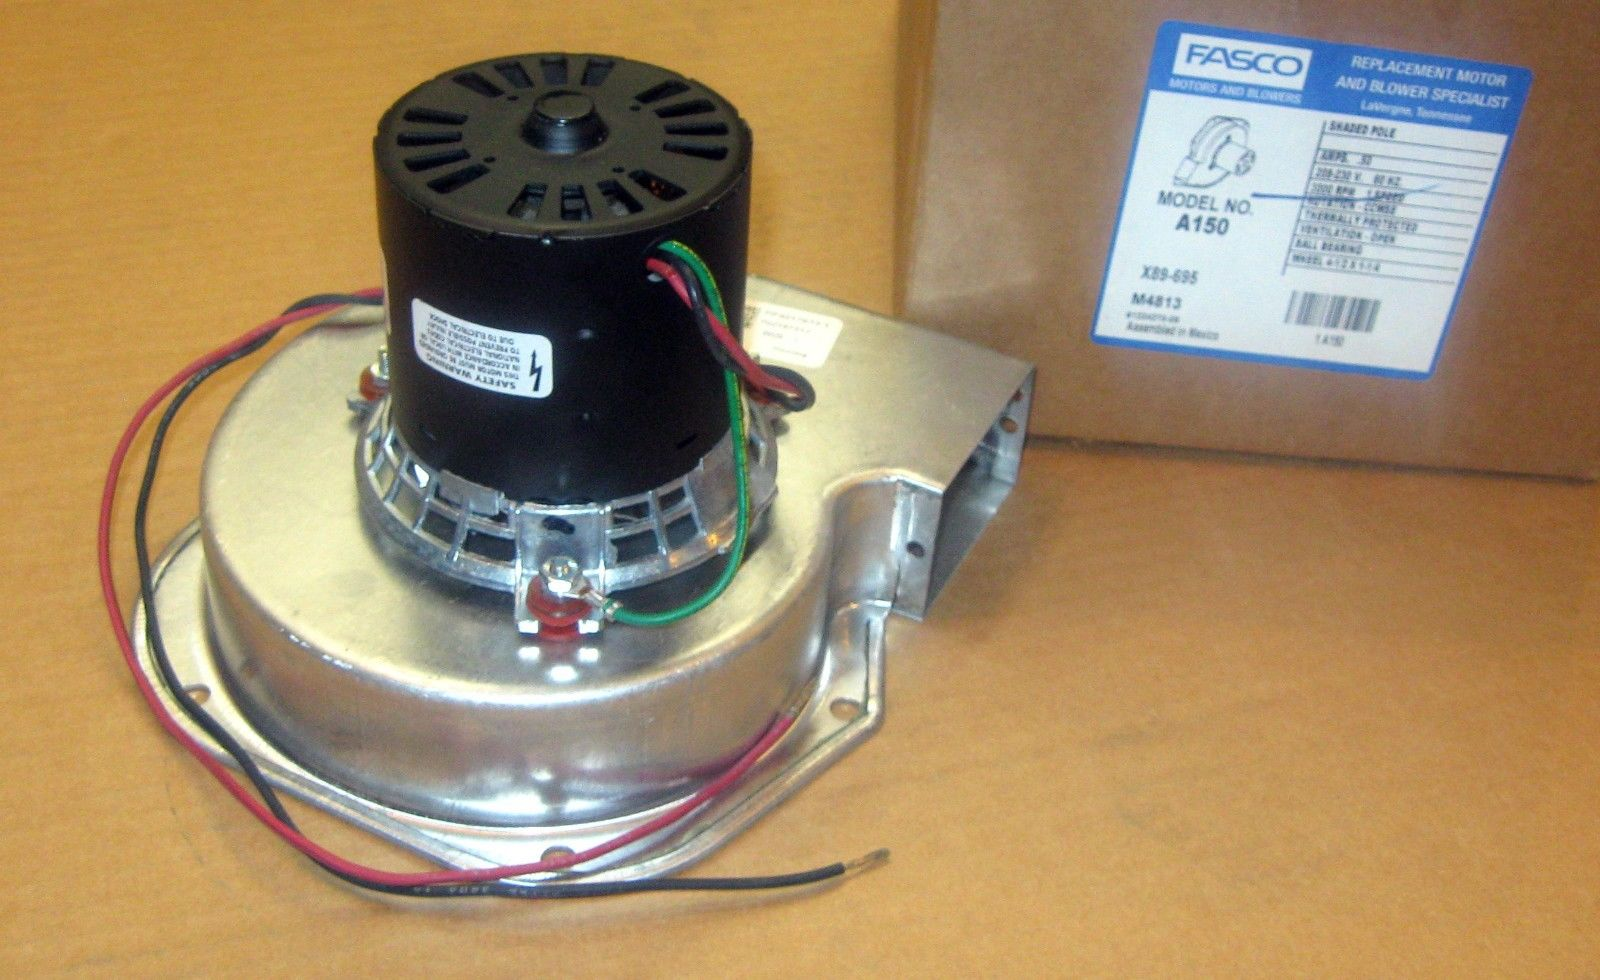 Details about Fasco A150 Blower Inducer Motor fits Trane 7021-7833  7021-8928 BLW-45 C661452P